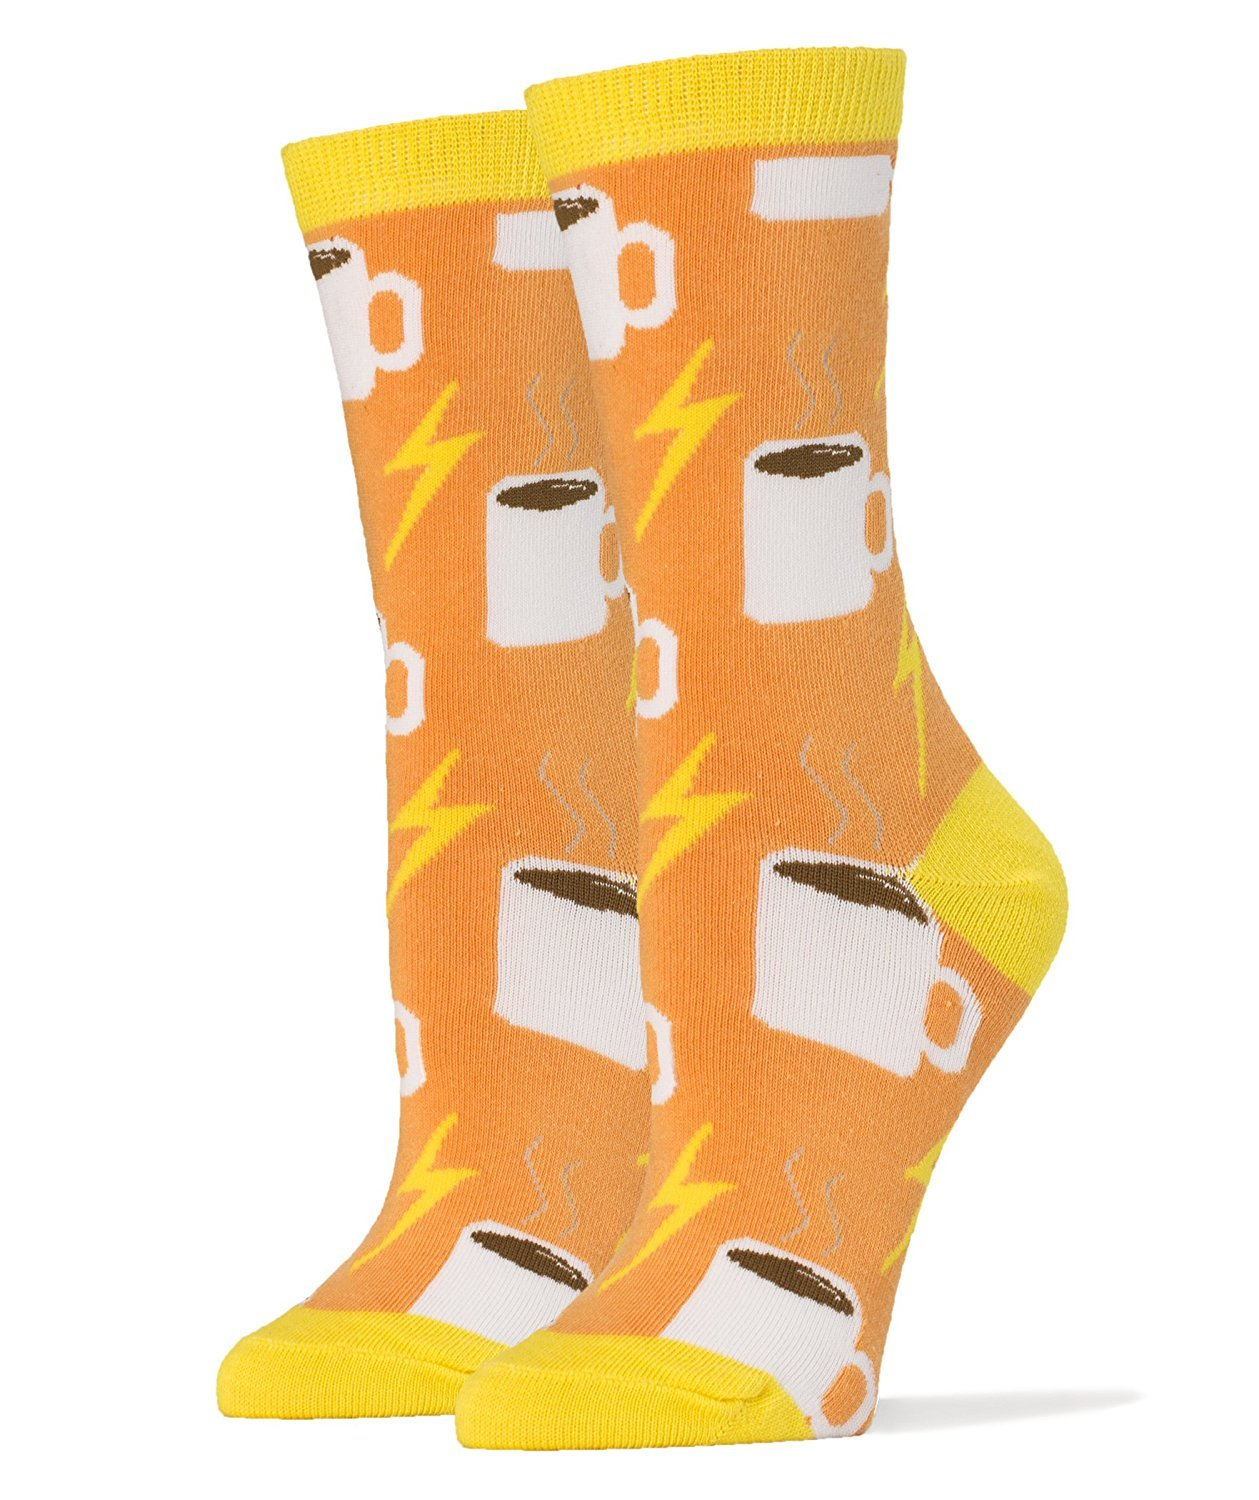 Oooh Yeah Women's Novelty Crew Socks, Funny Crazy Silly Socks, Cool Fashion Socks, Office Socks, Dress Socks